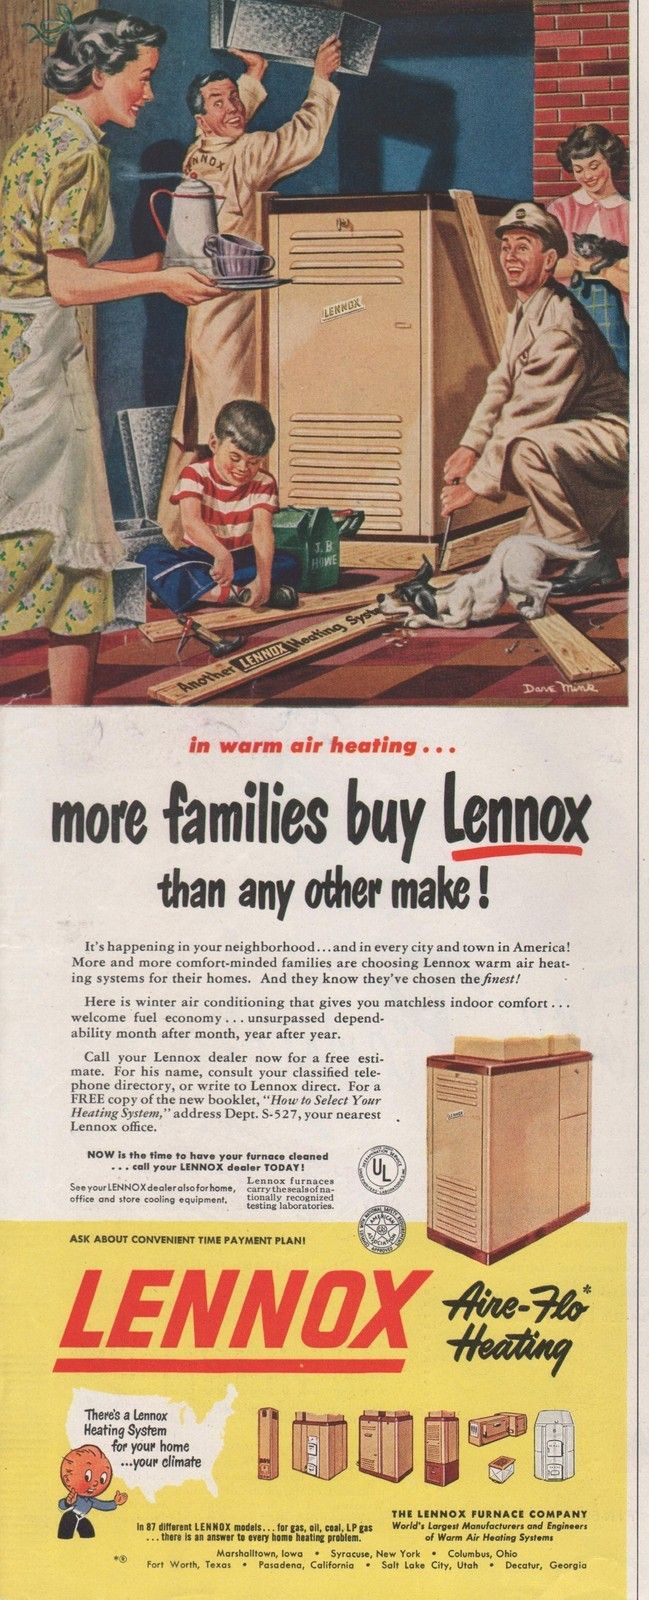 1950 Vintage Lennox Furance Aire Flo Heating More Families Buy Print Ad | eBay